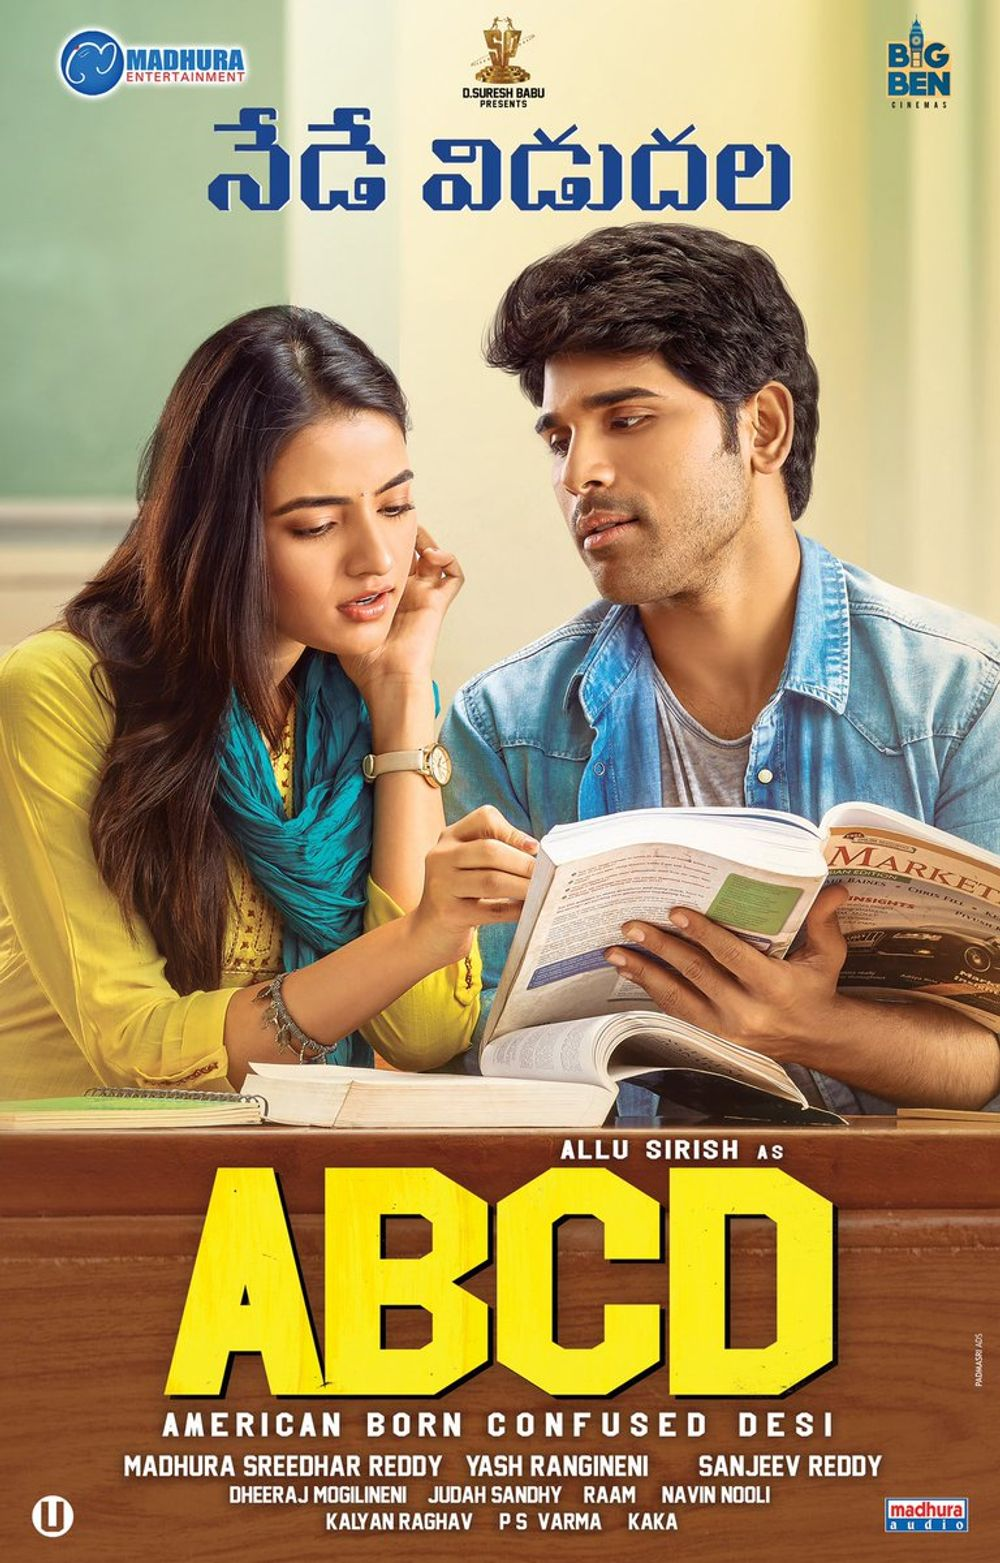 ABCD: American Born Confused Desi 2019 Hindi Dual Audio 500MB UNCUT HDRip ESubs Download